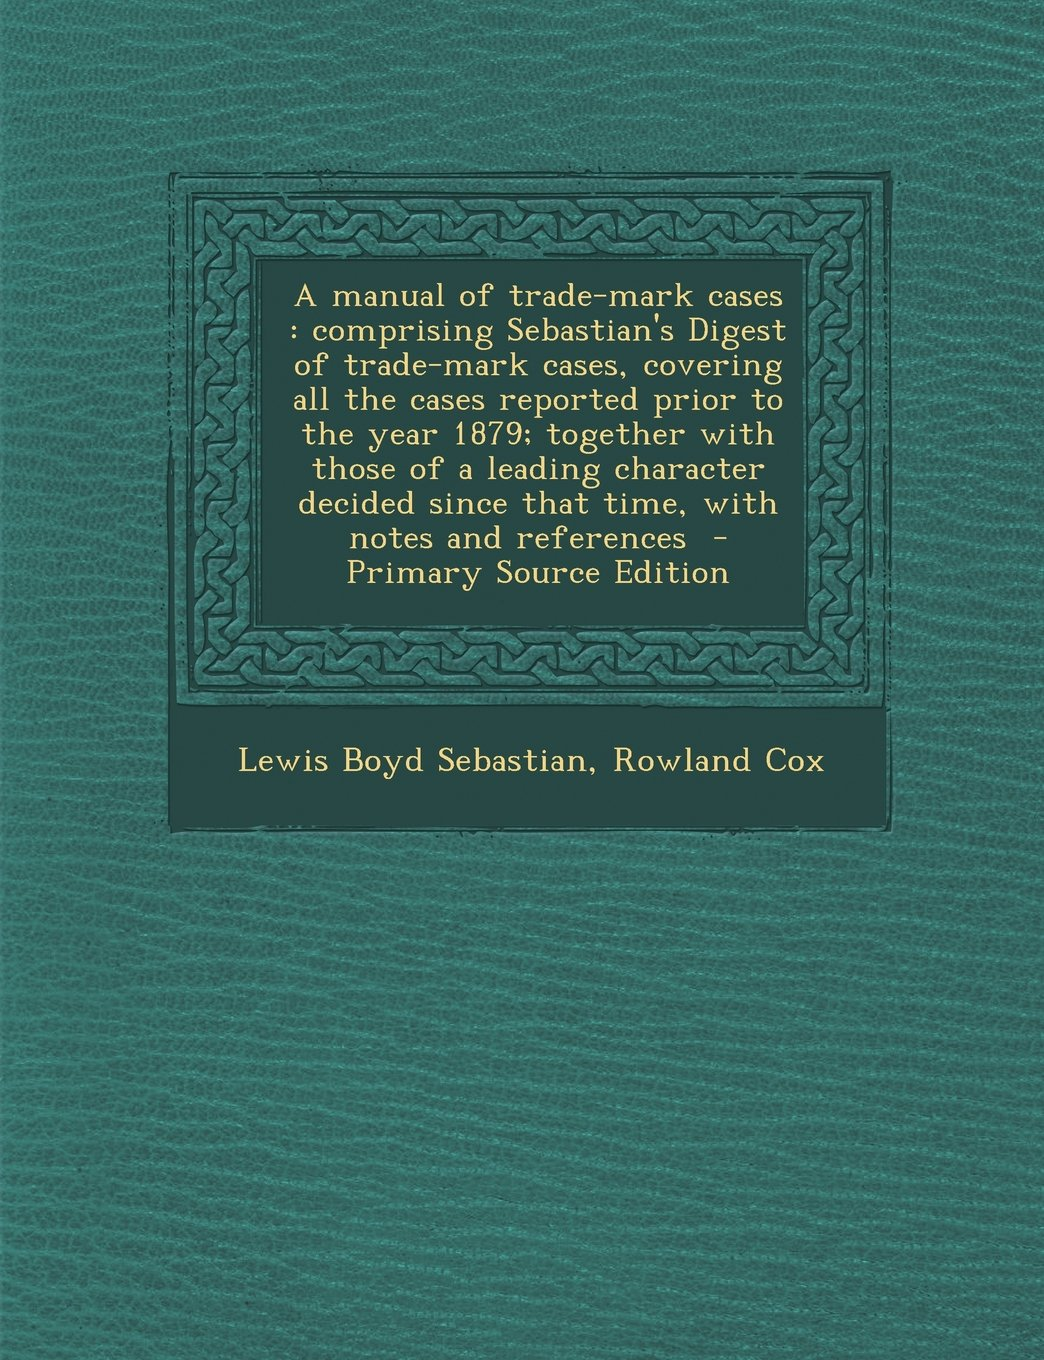 A manual of trade-mark cases: comprising Sebastian's Digest of trade-mark cases, covering all the cases reported prior to the year 1879; together with ... since that time, with notes and references pdf